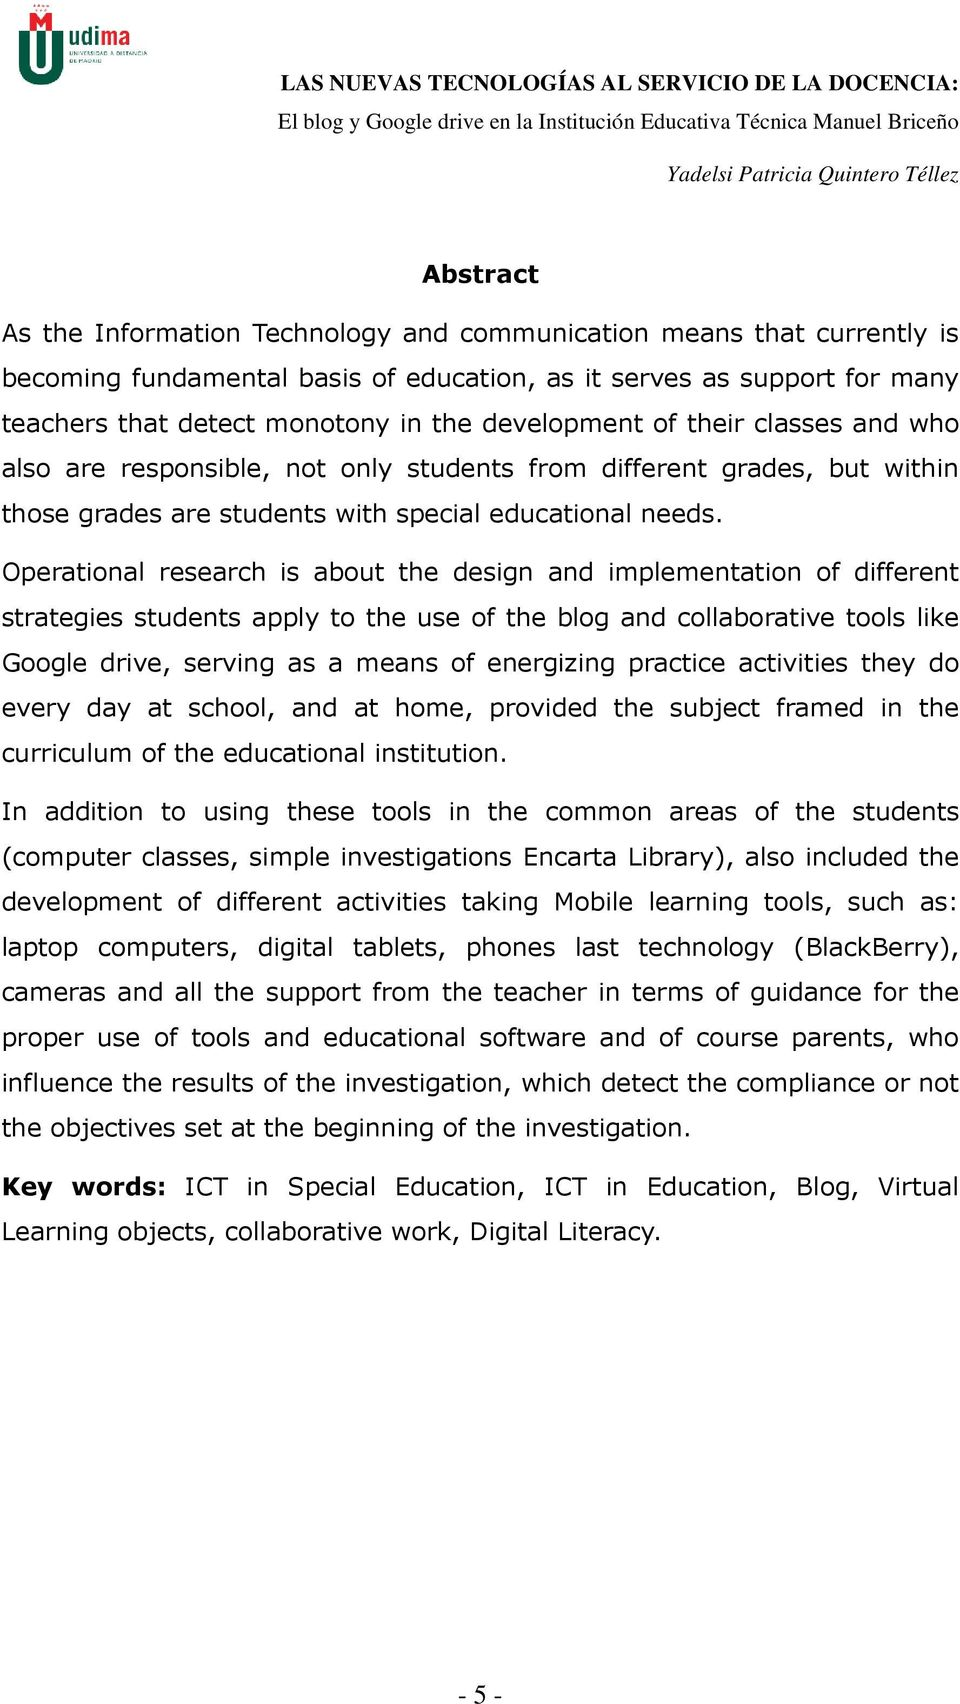 Operational research is about the design and implementation of different strategies students apply to the use of the blog and collaborative tools like Google drive, serving as a means of energizing